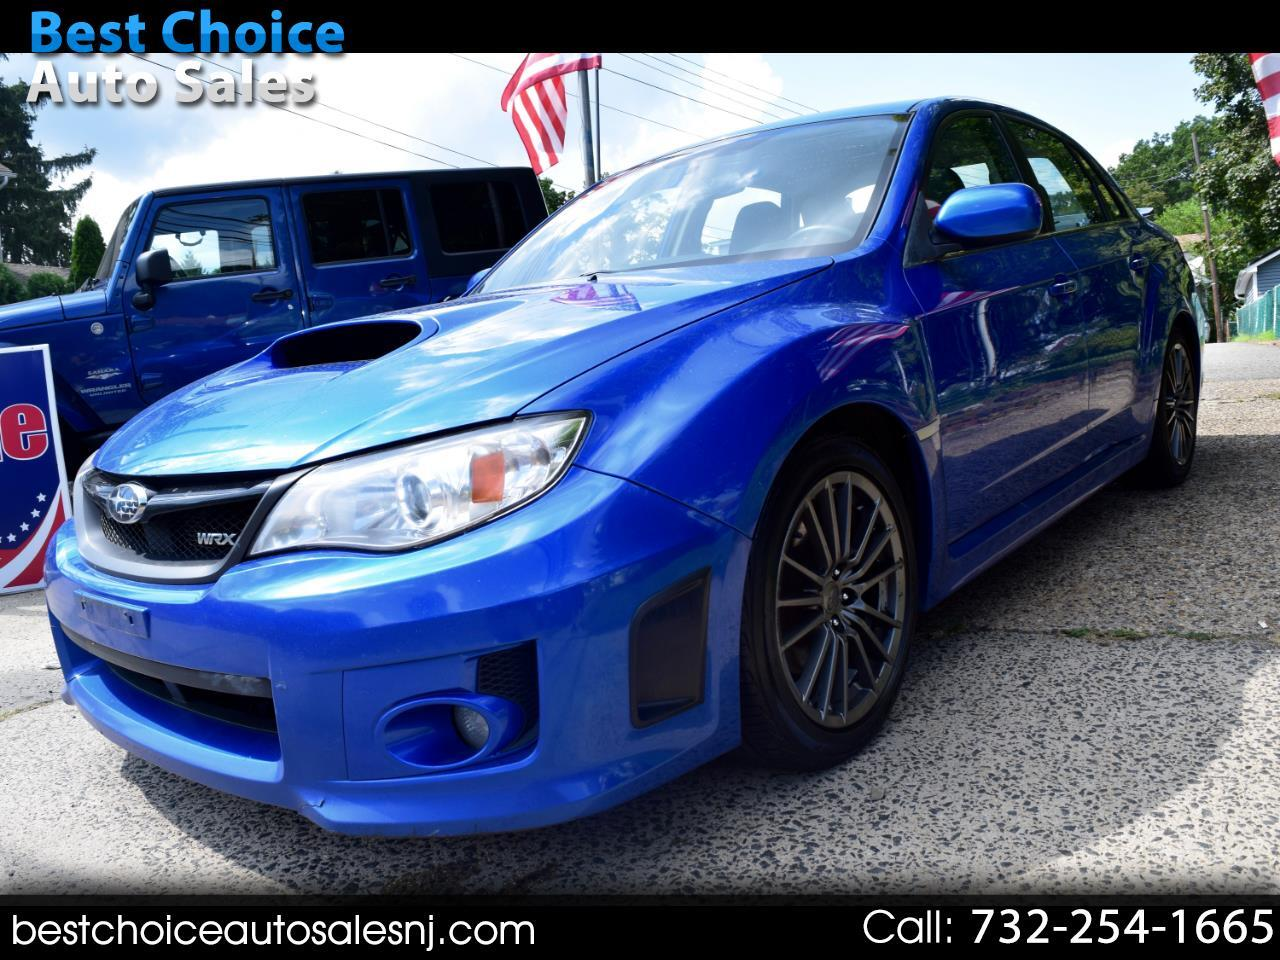 2013 Subaru Impreza Sedan WRX 4dr Man WRX Limited